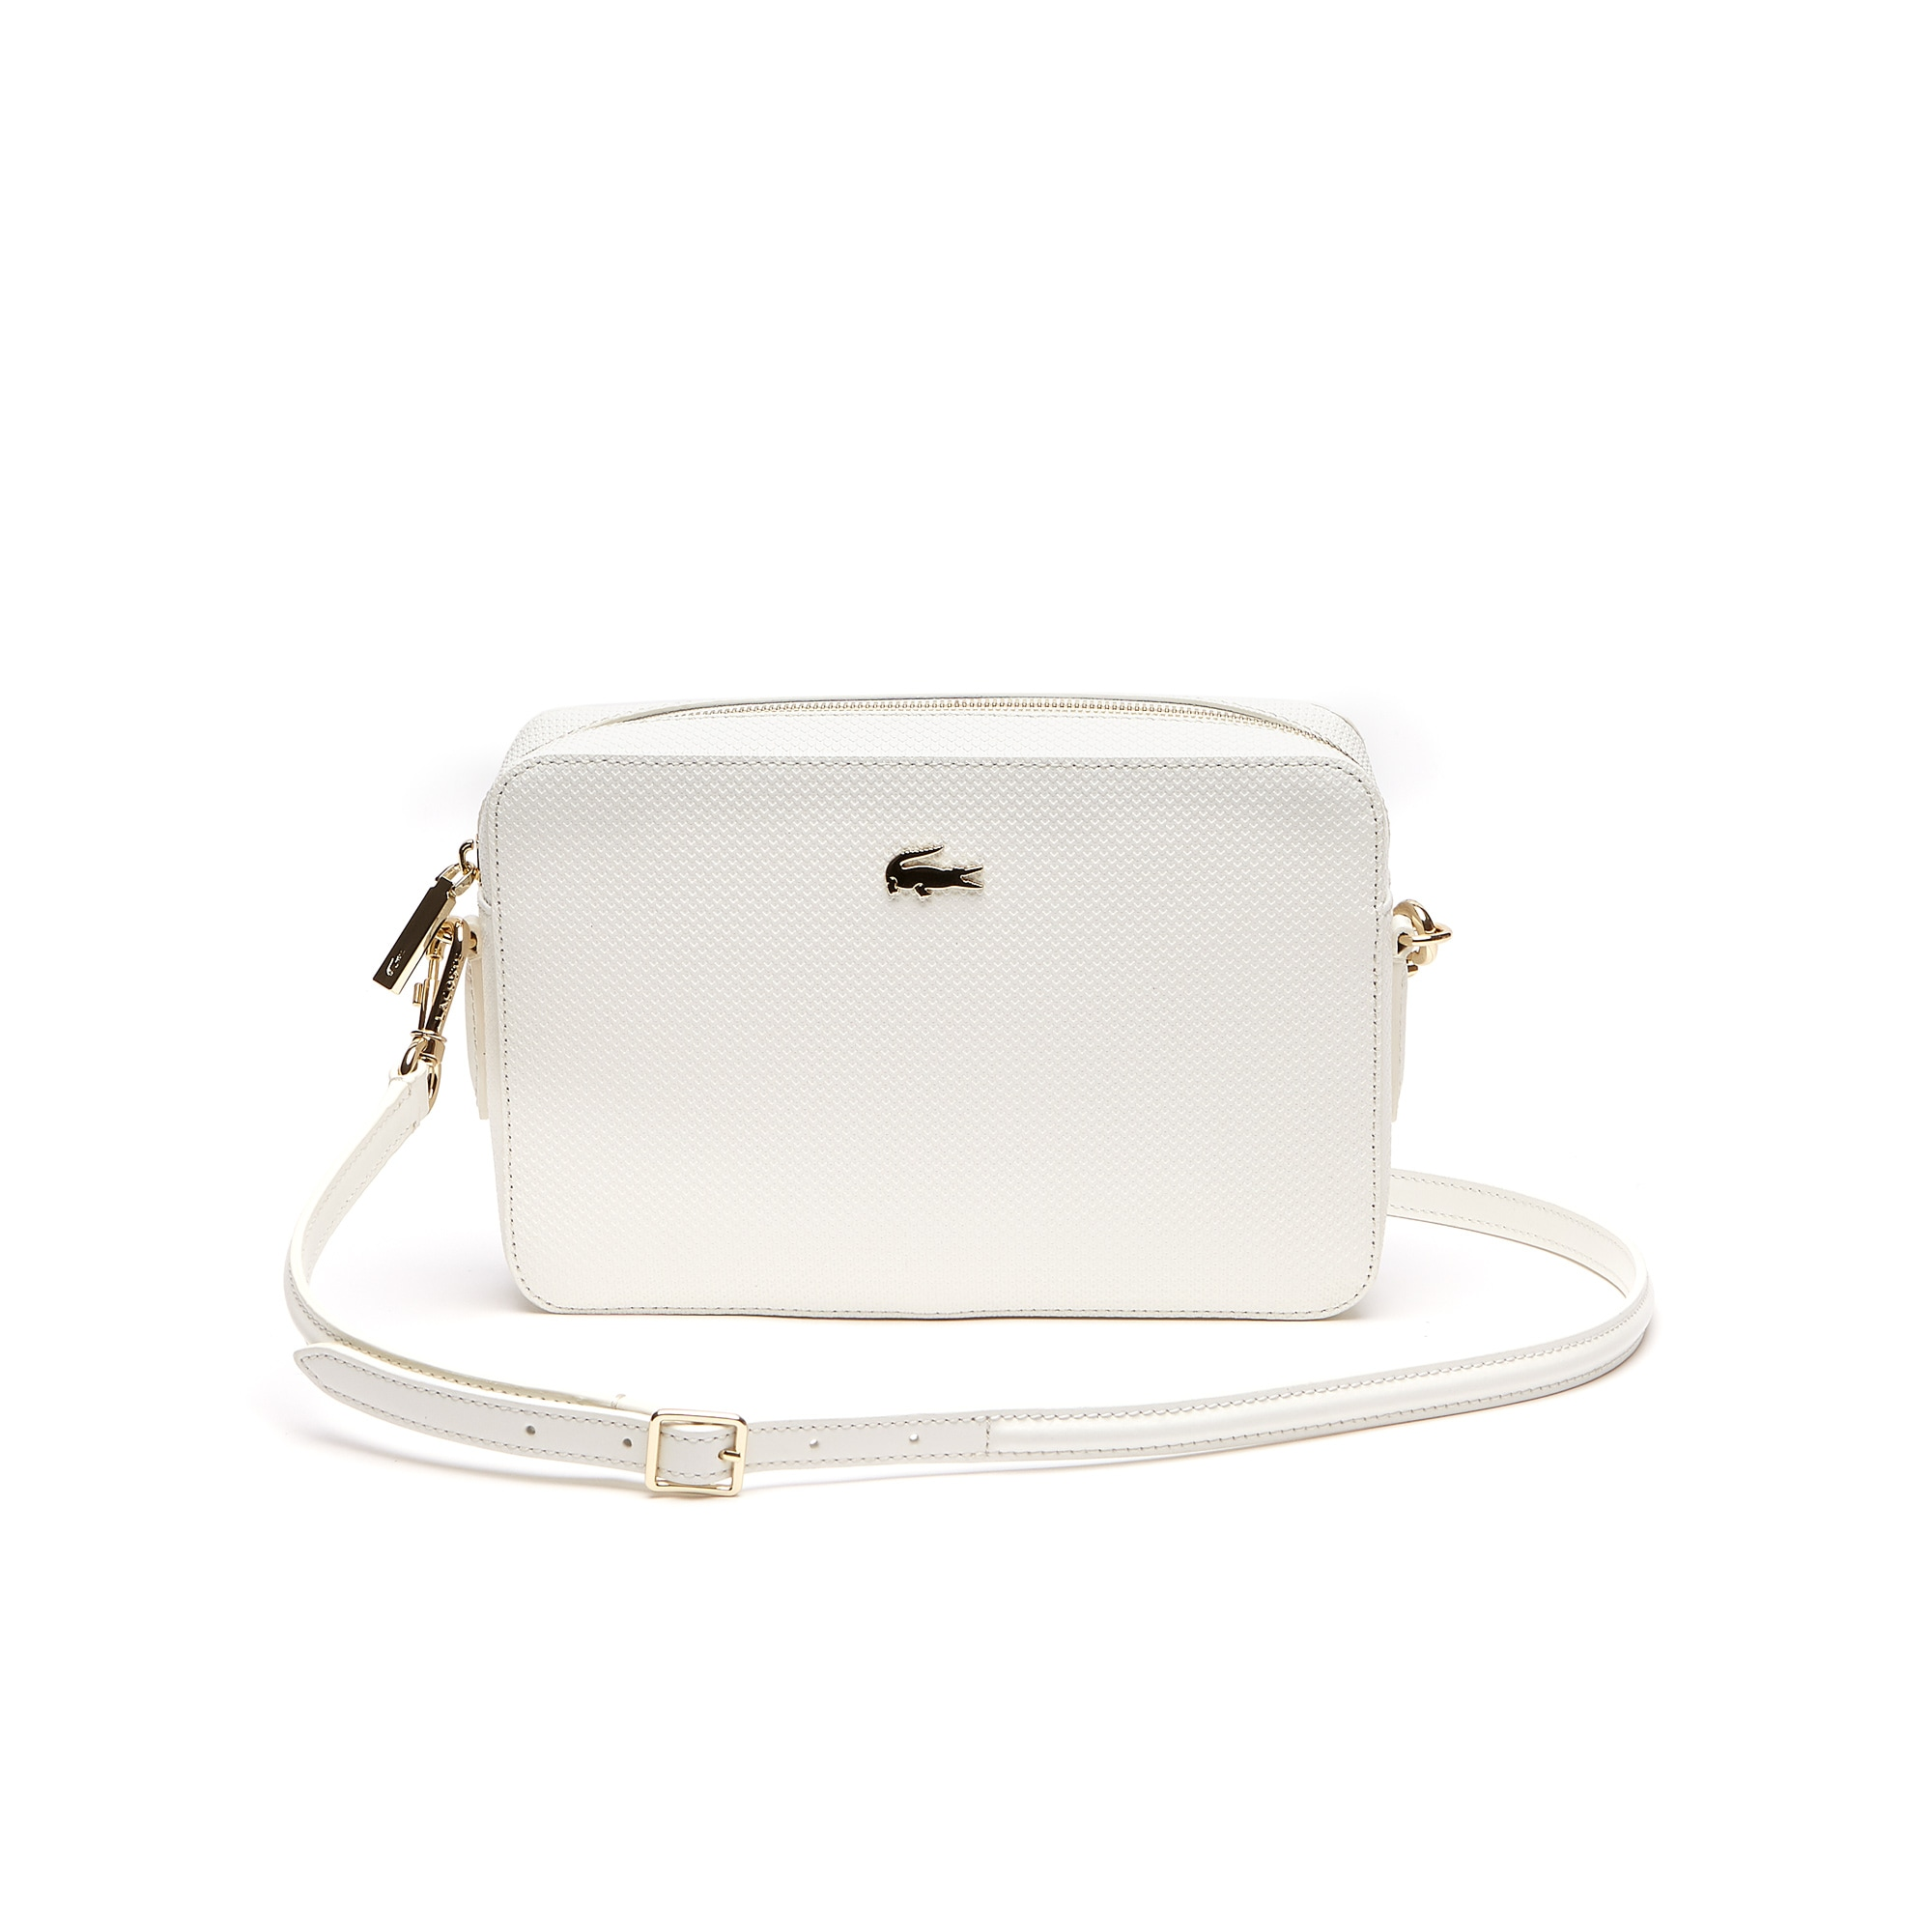 a5160a1965c59 Lacoste Women S Chantaco PiquÉ Leather Square Crossover Bag In Marshmallow